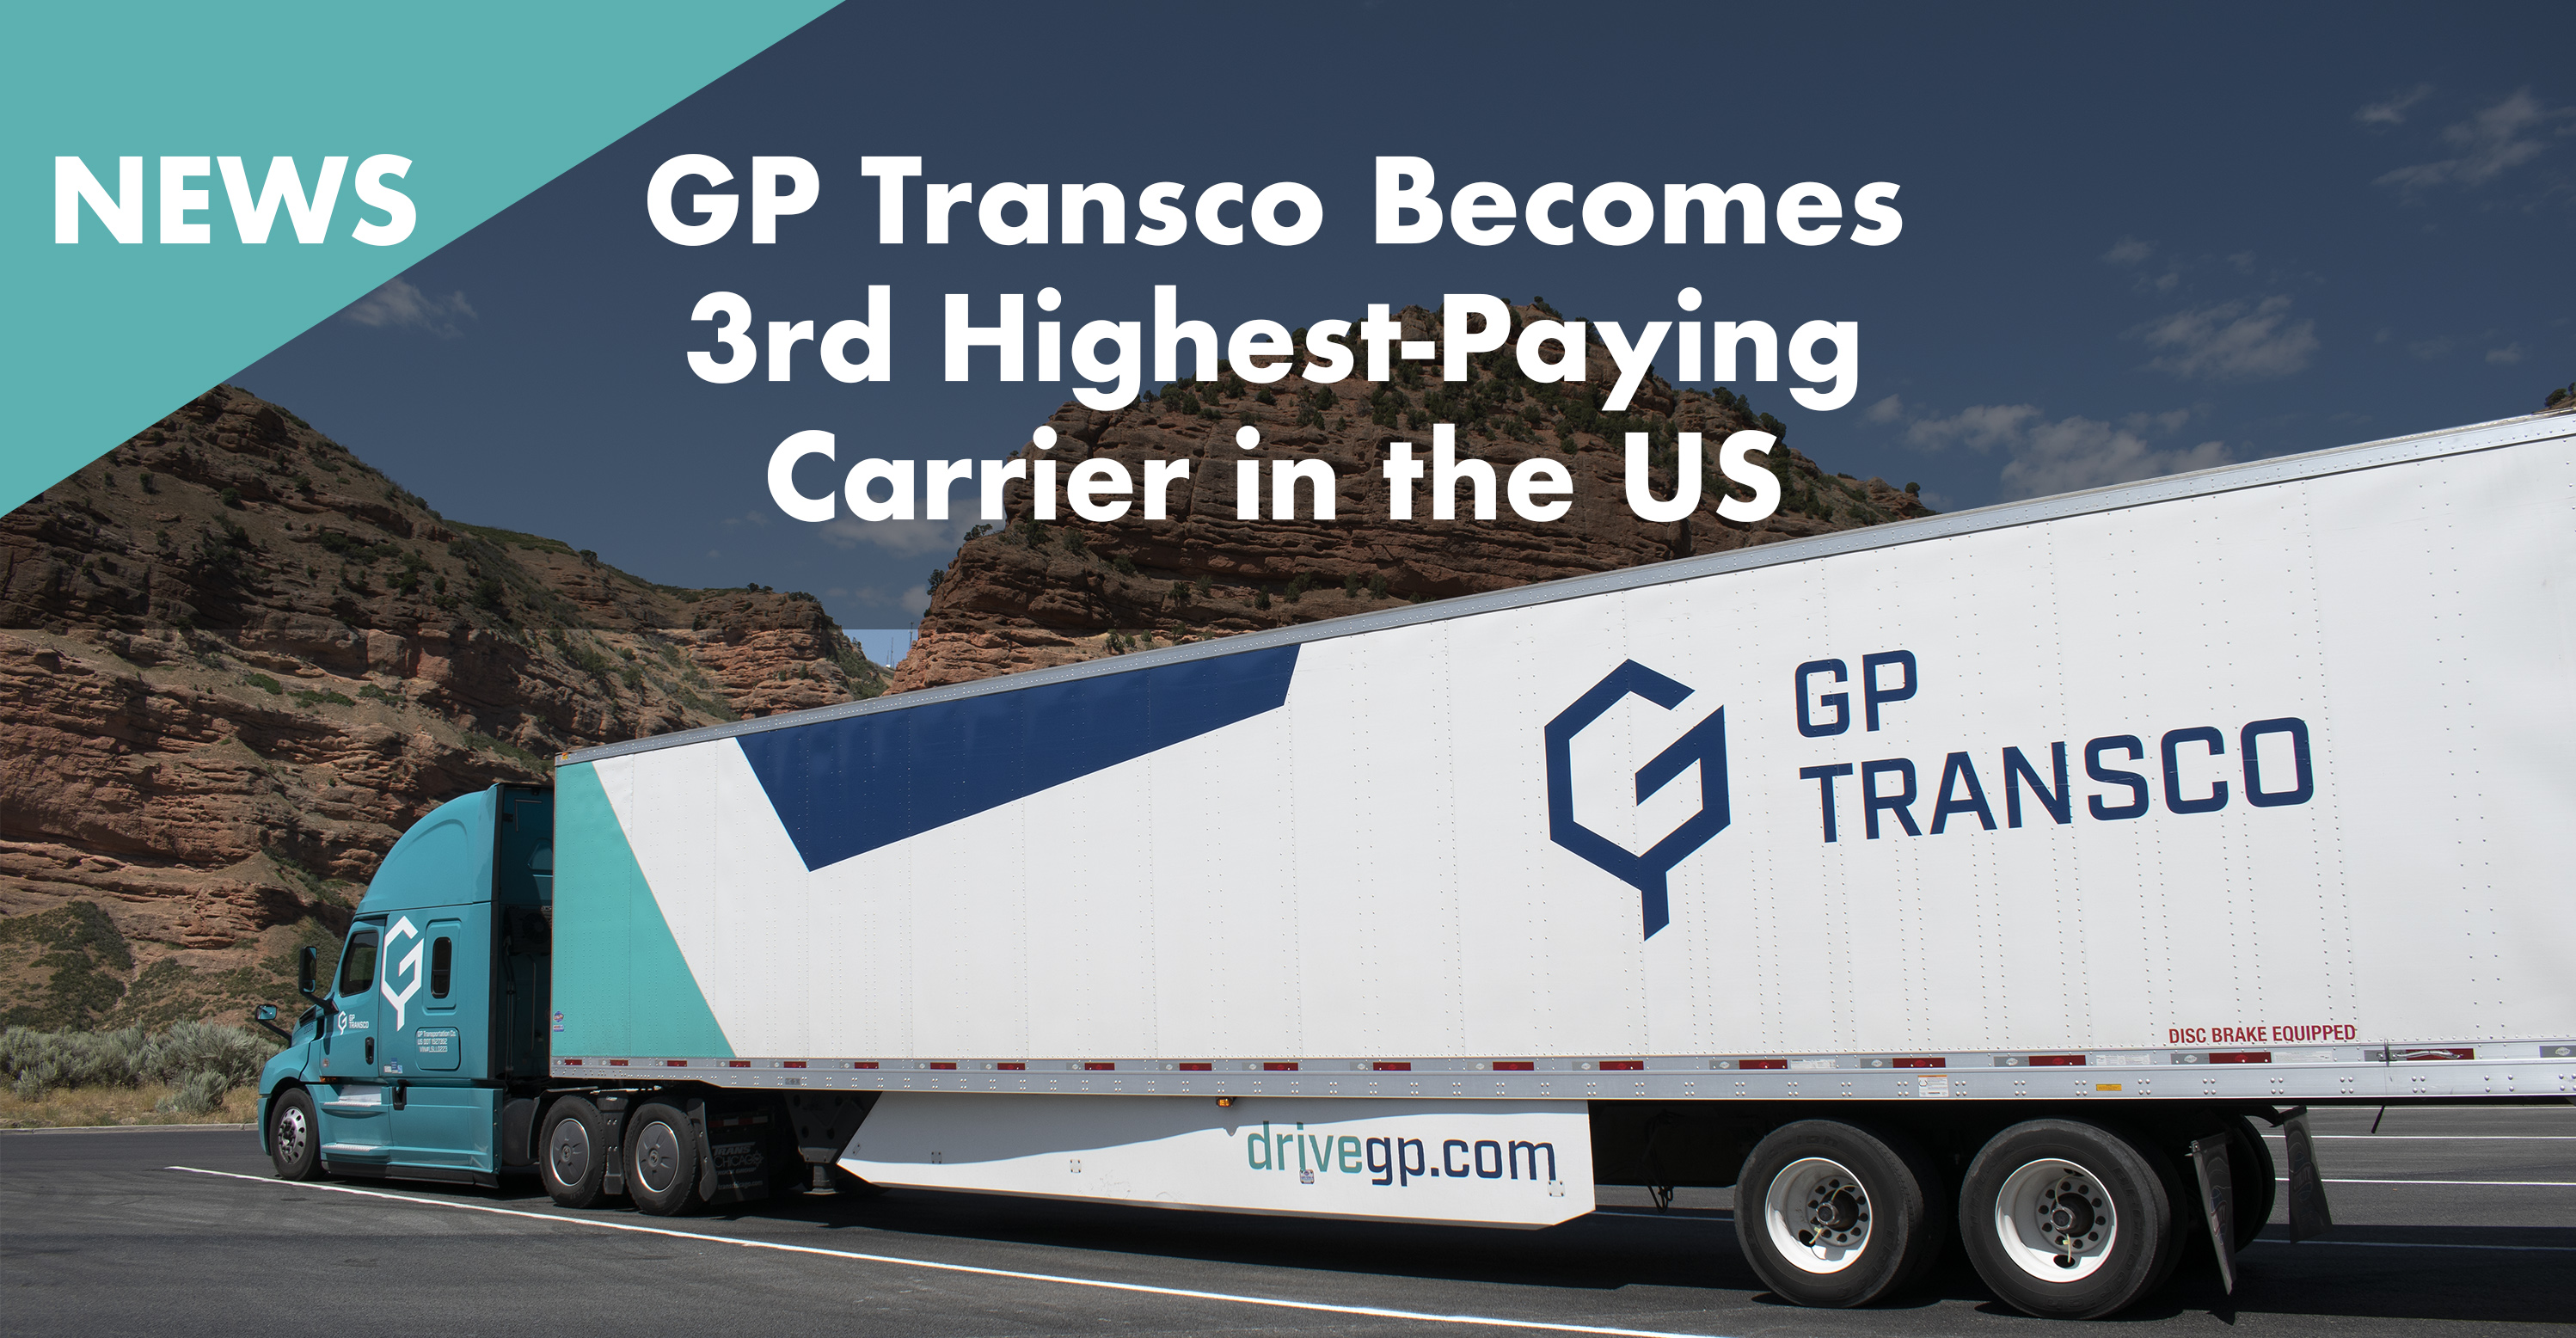 GP Transco Becomes 3rd Highest-Paying Trucking Company in